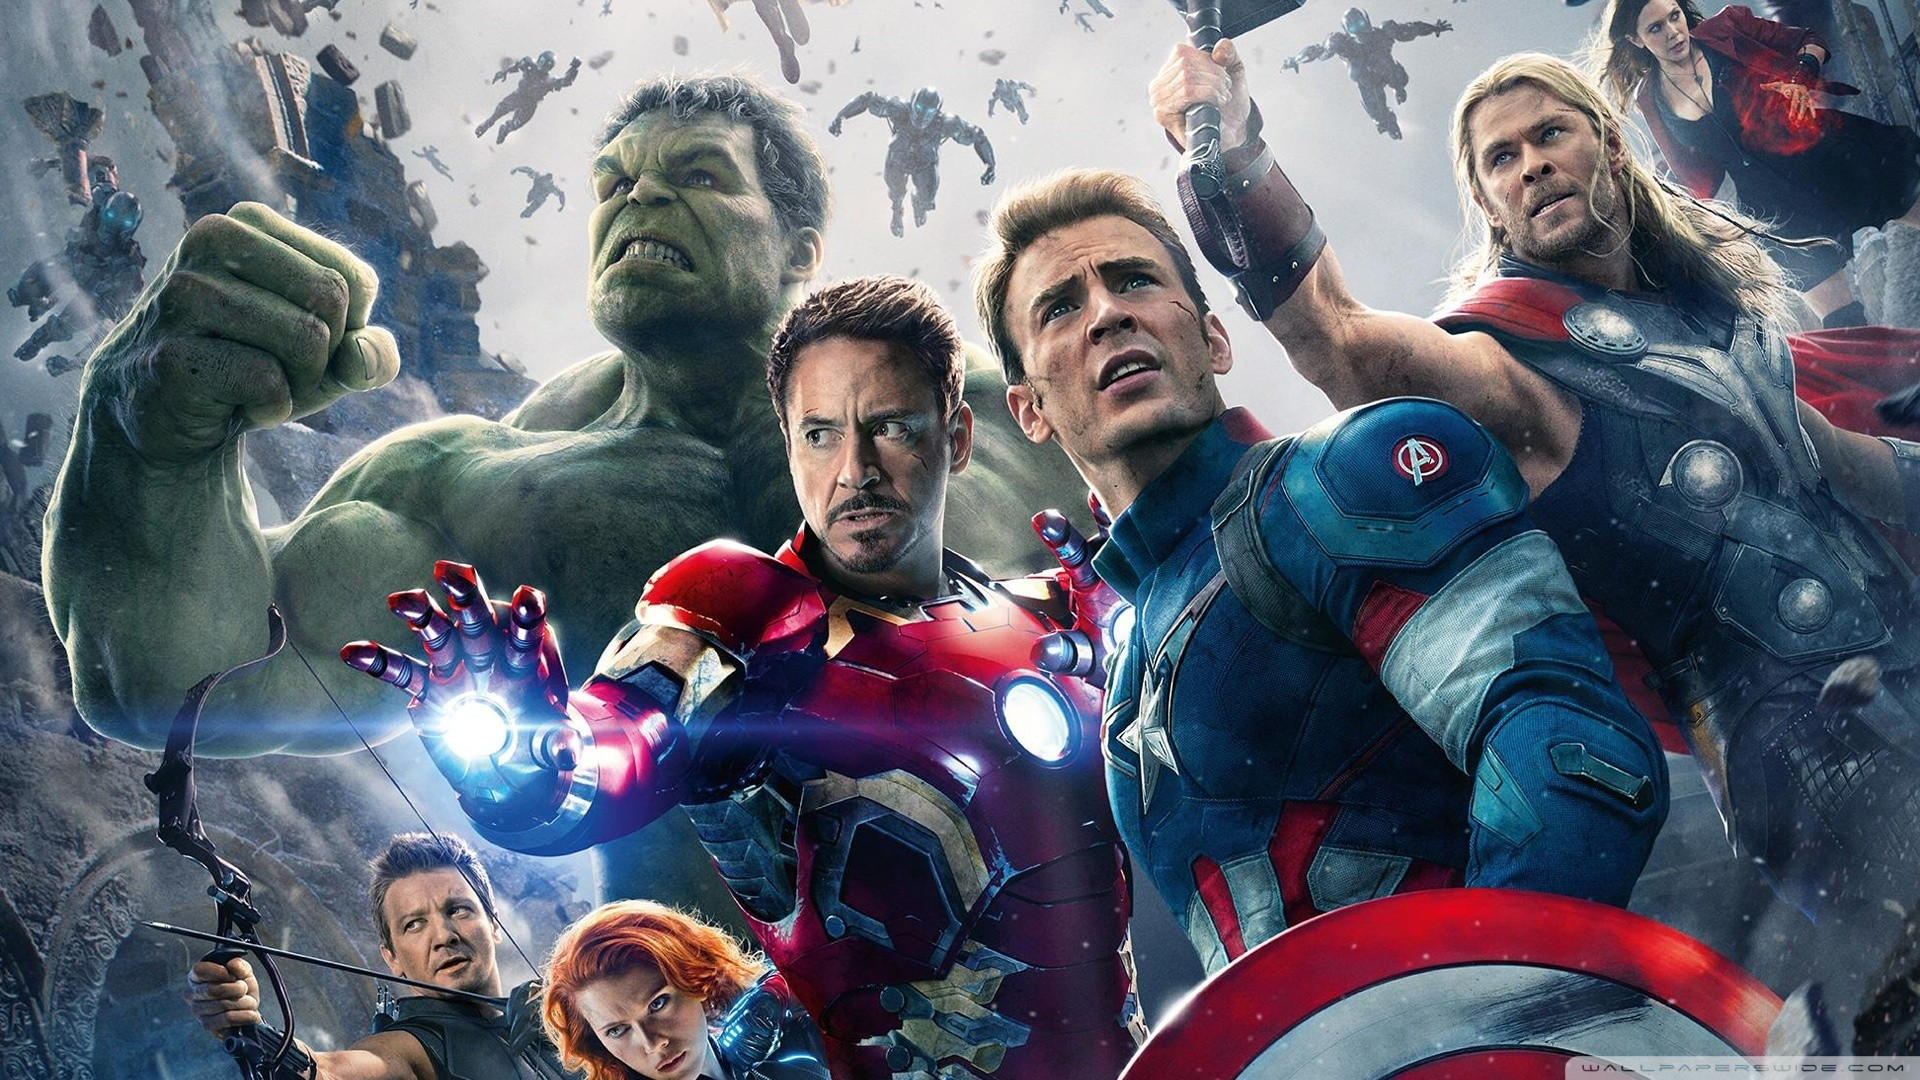 Avengers 2 Wallpapers 68 images